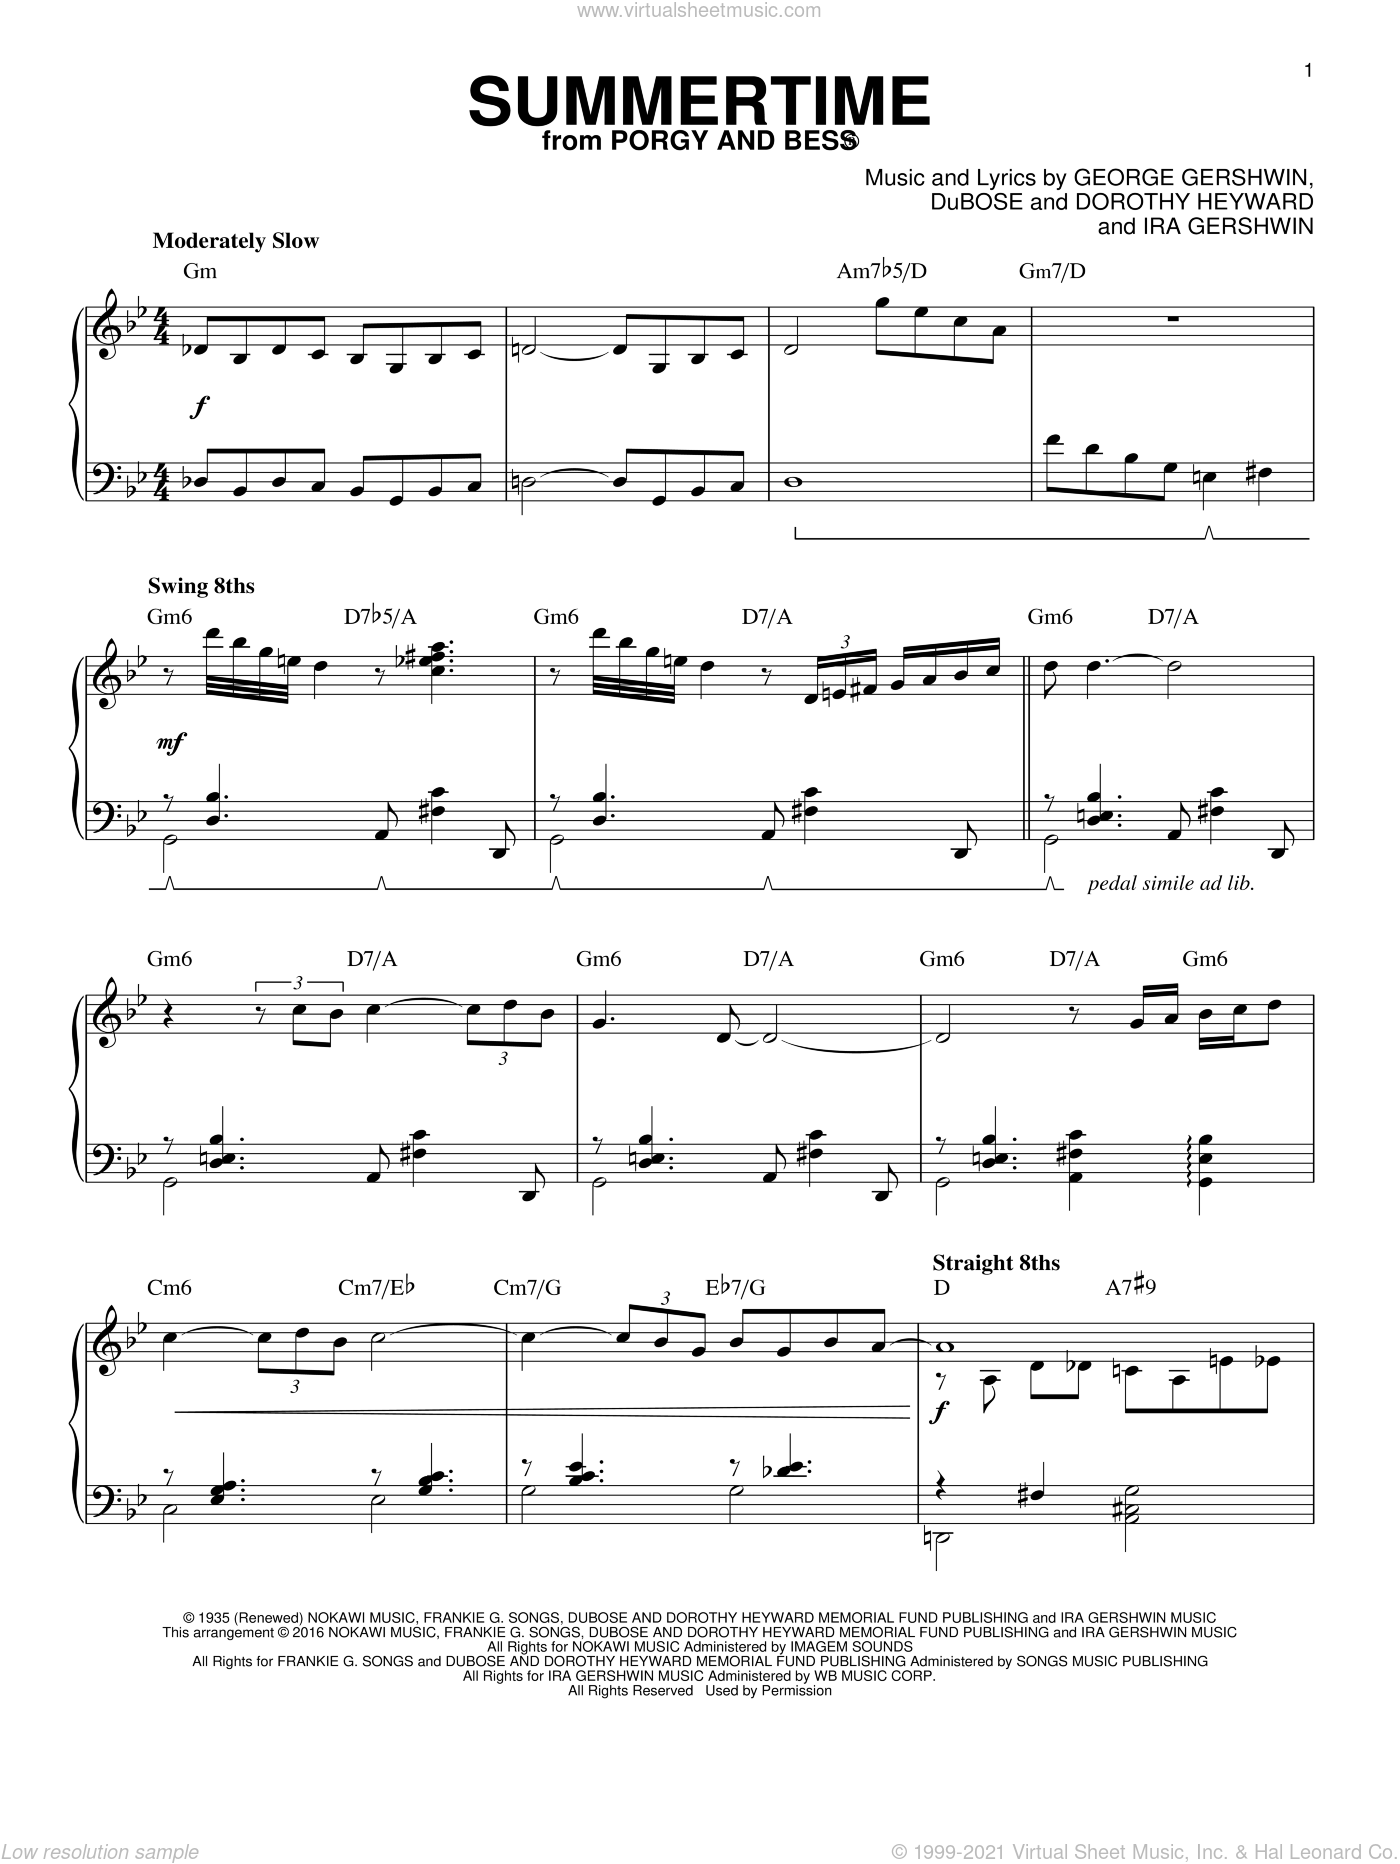 Summertime sheet music for piano solo by Charlie Parker, Dorothy Heyward, DuBose Heyward, George Gershwin and Ira Gershwin, intermediate skill level